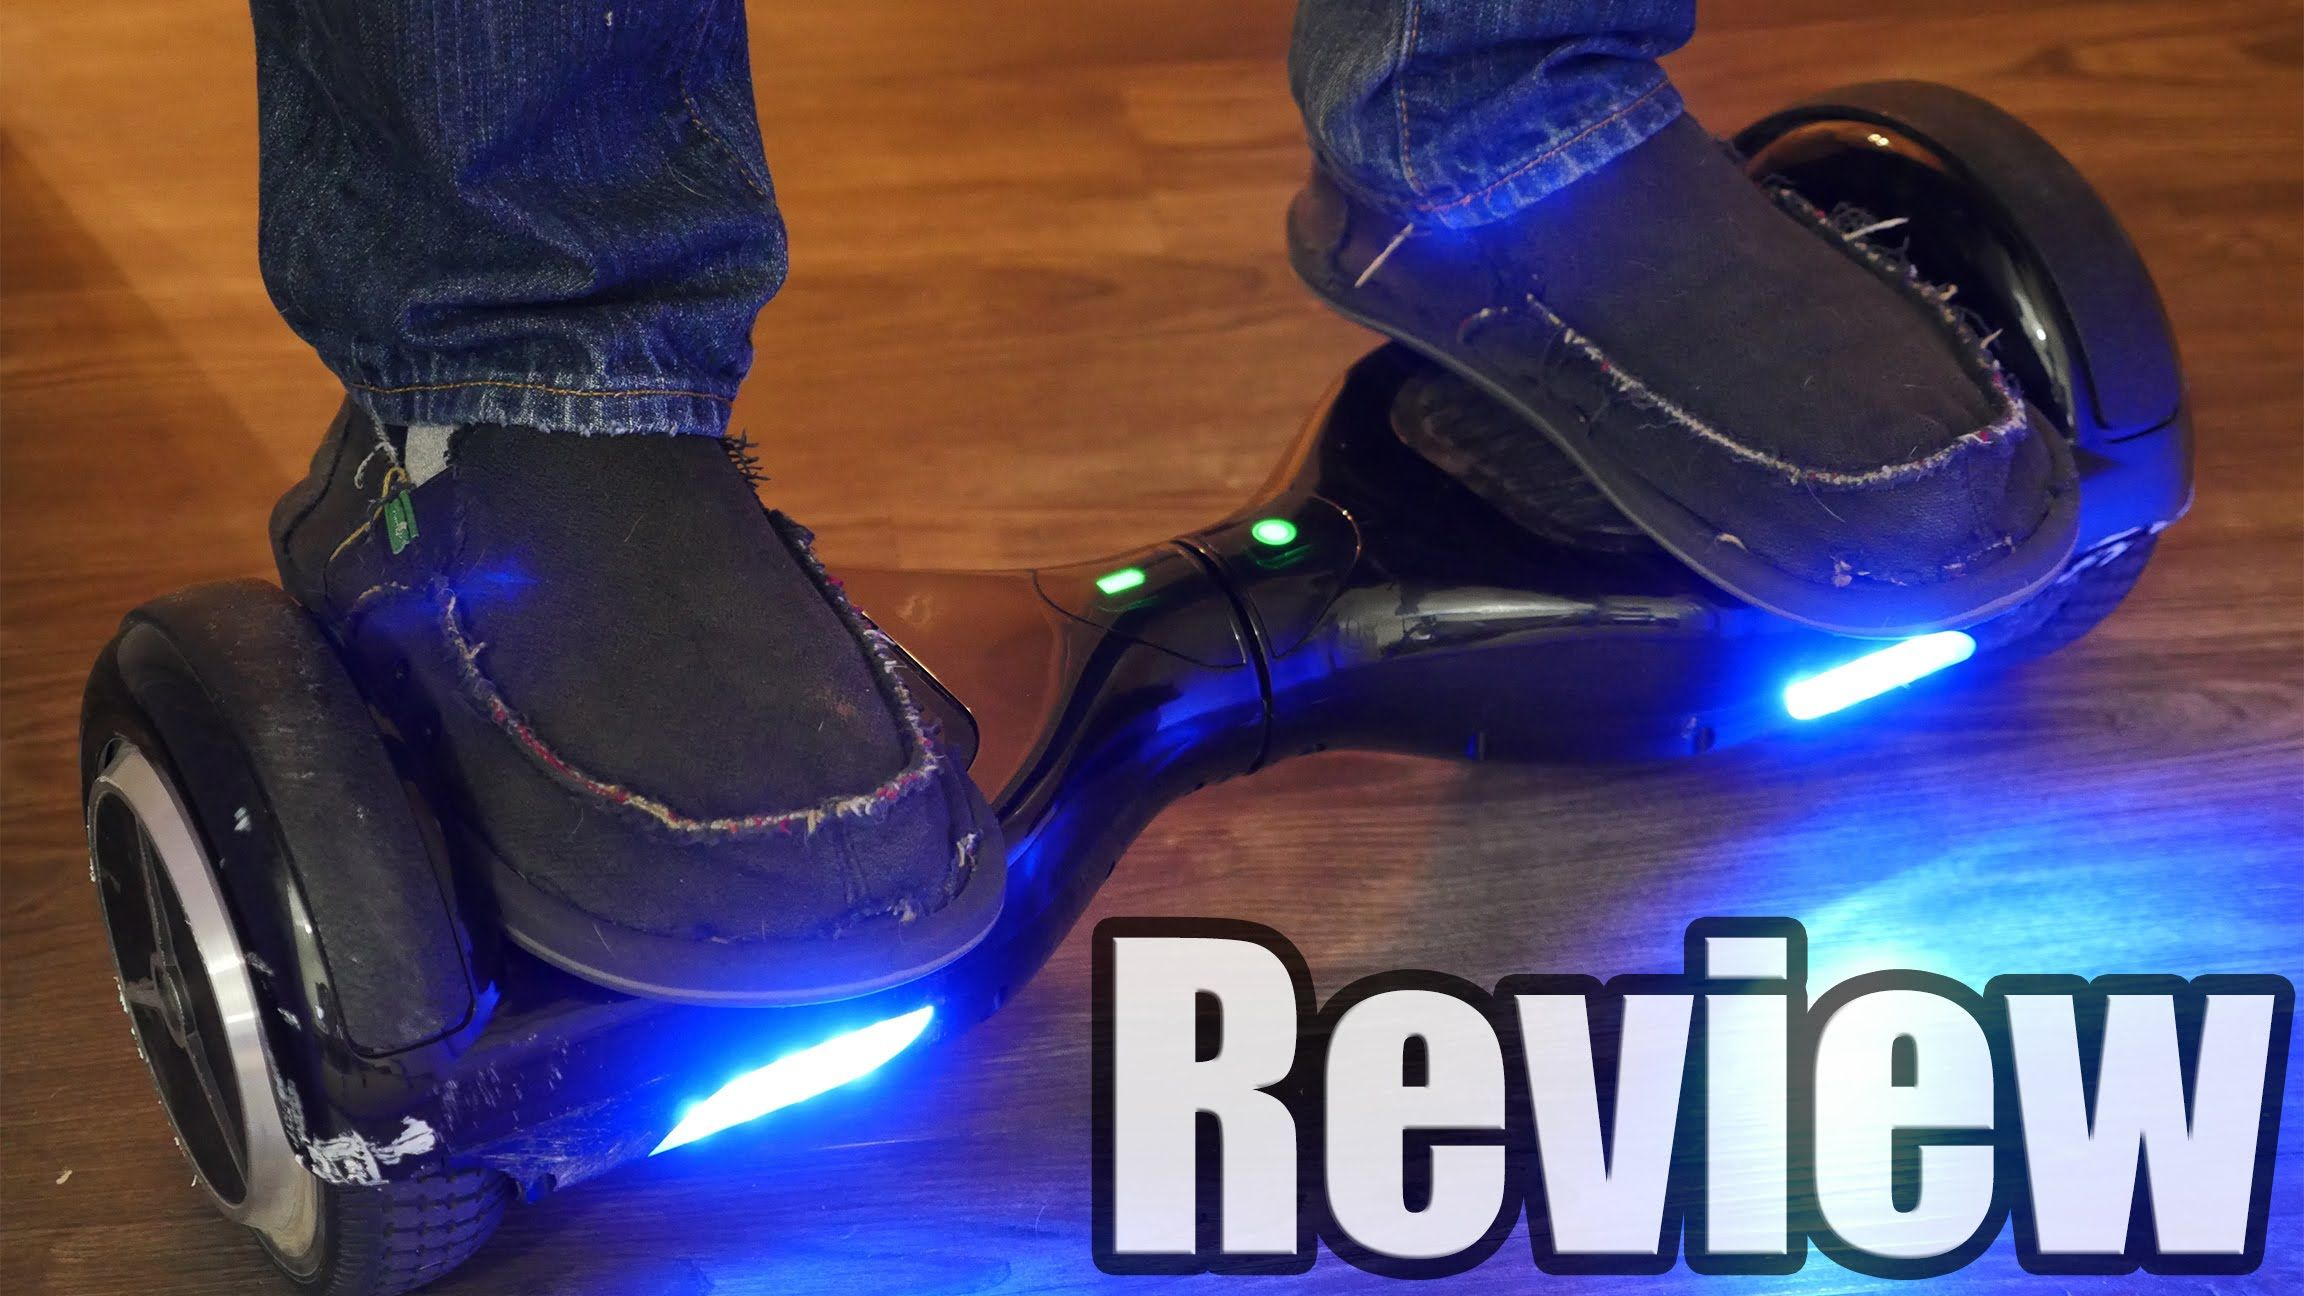 Hands Free Segway for $200 - Full Review and Where to Buy